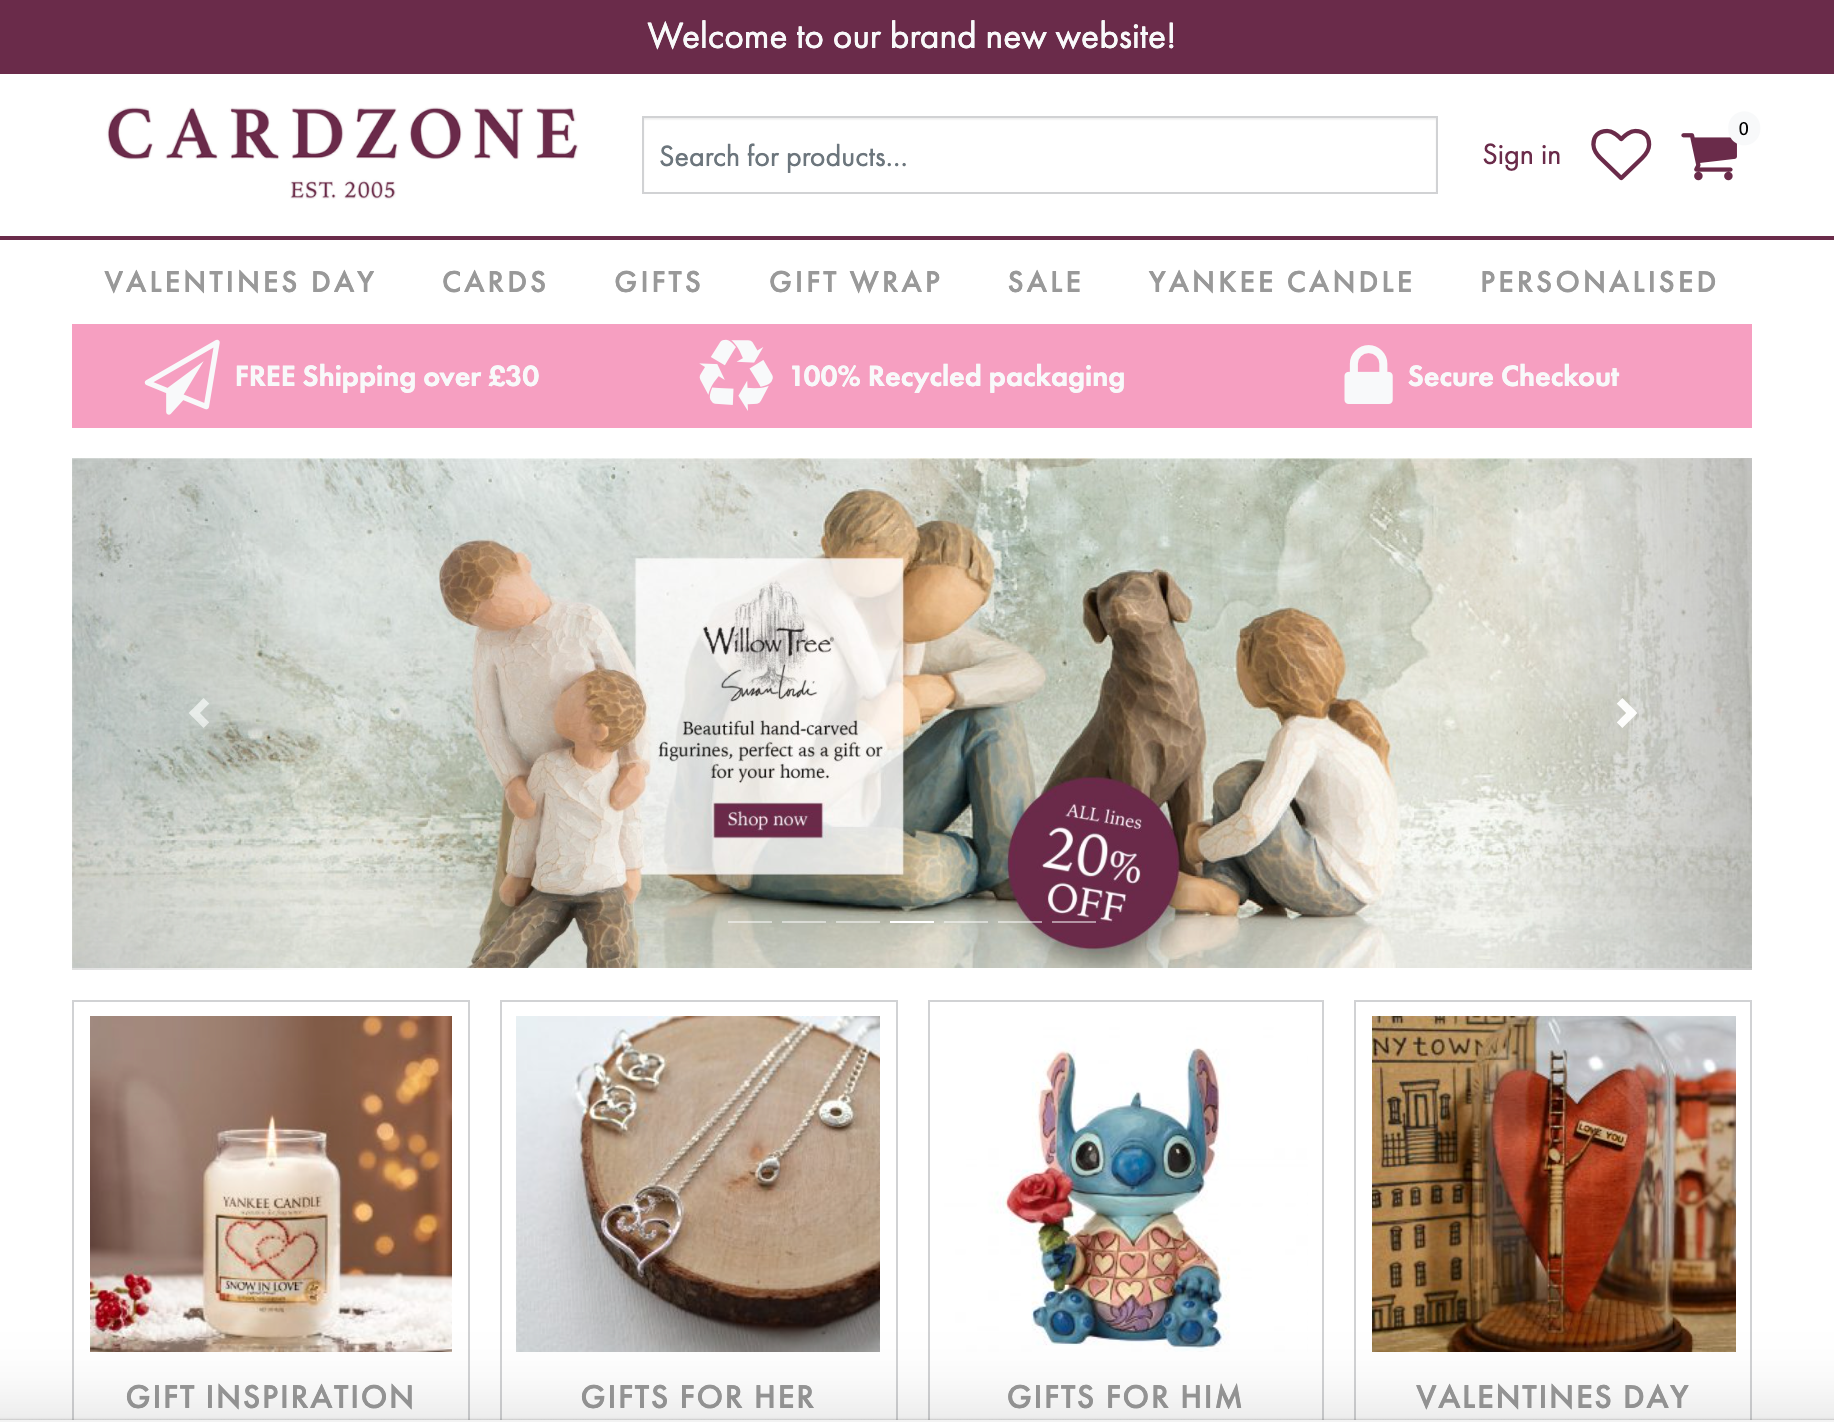 Above: As well as greeting cards from eight publishers (and counting), the new Cardzone site offers gifts and candles from several leading brands as well as giftwrappings.